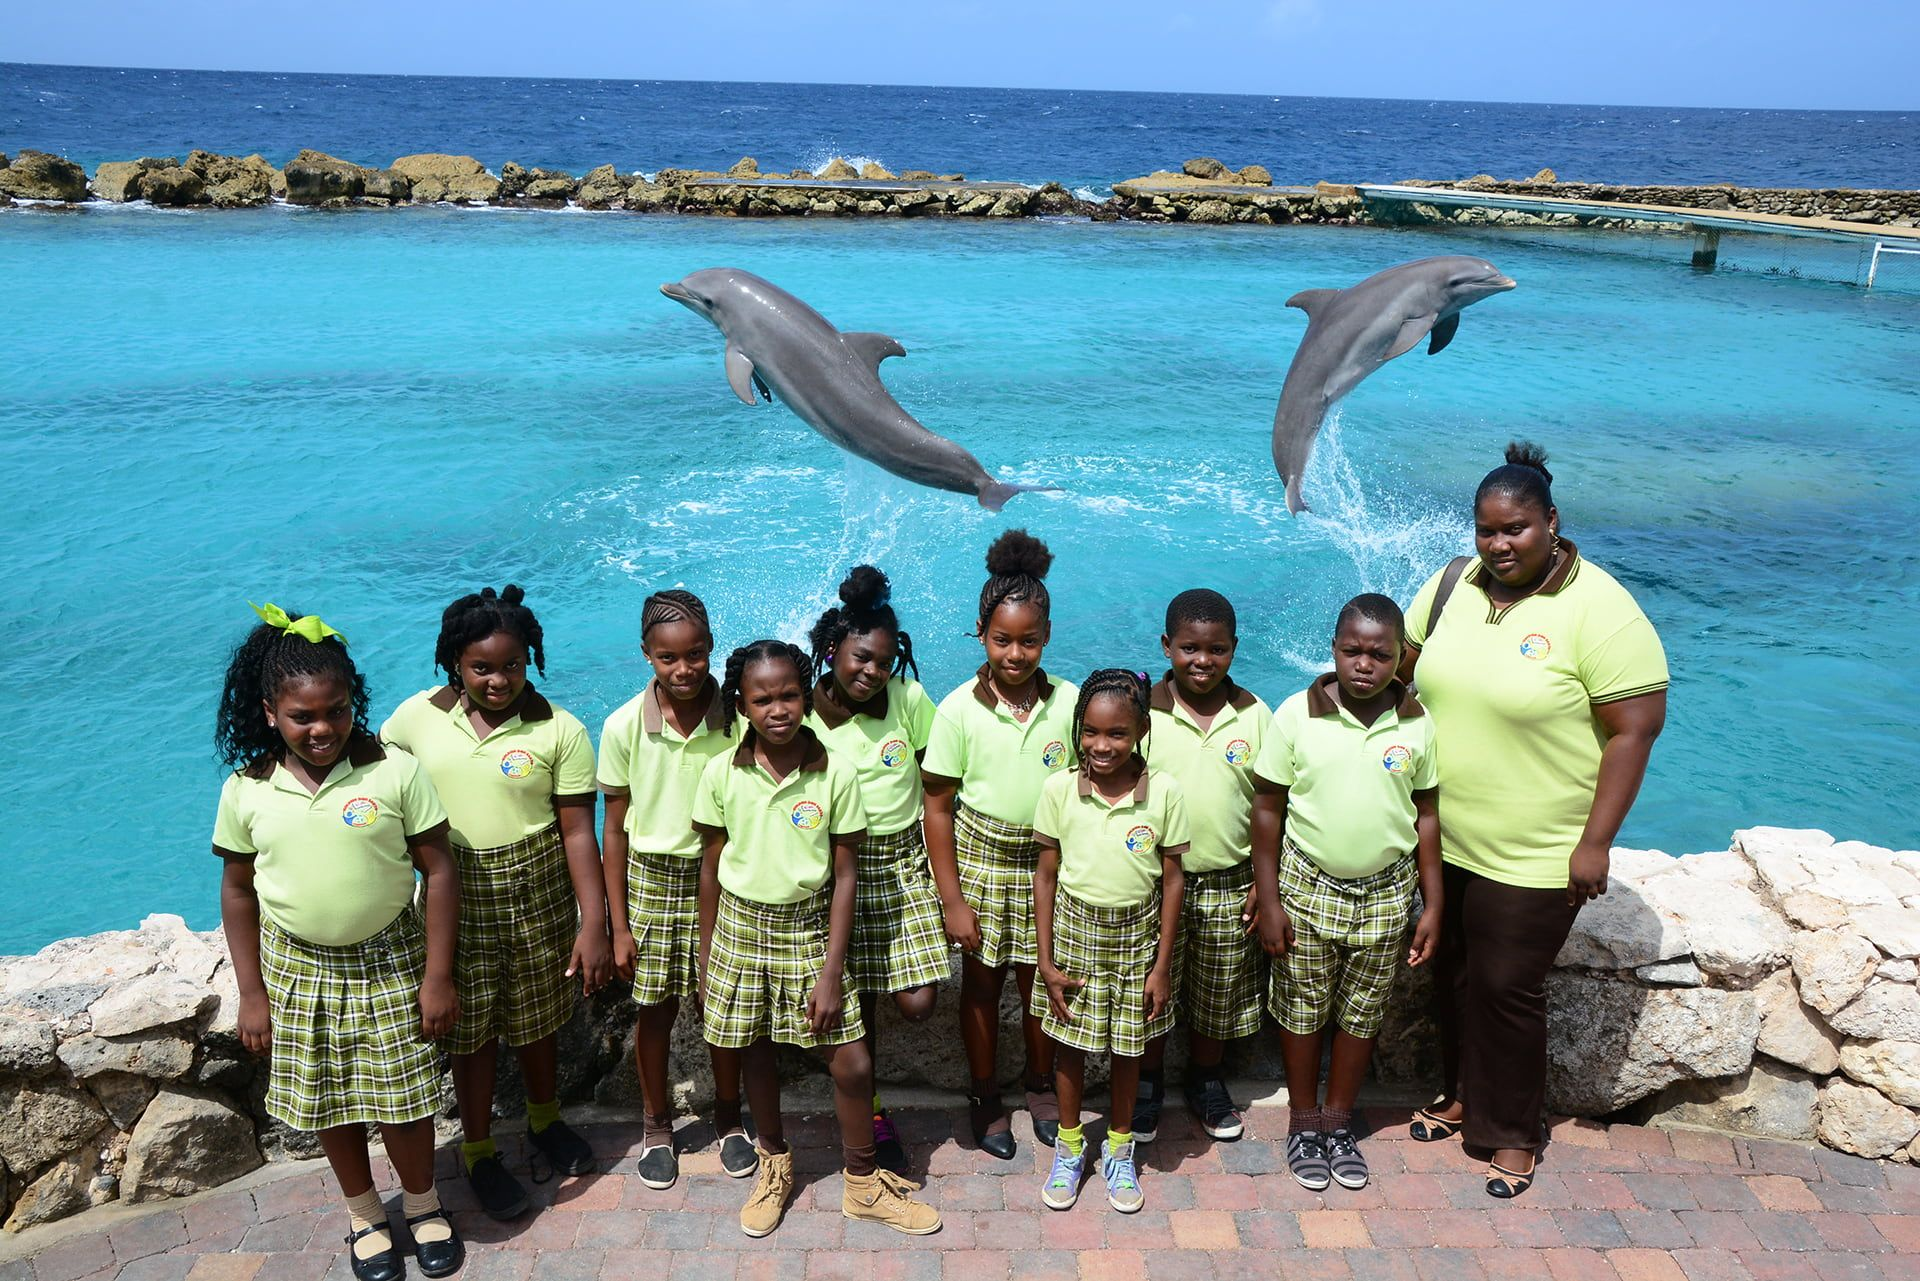 School kids at the Dolphin Academy school project.